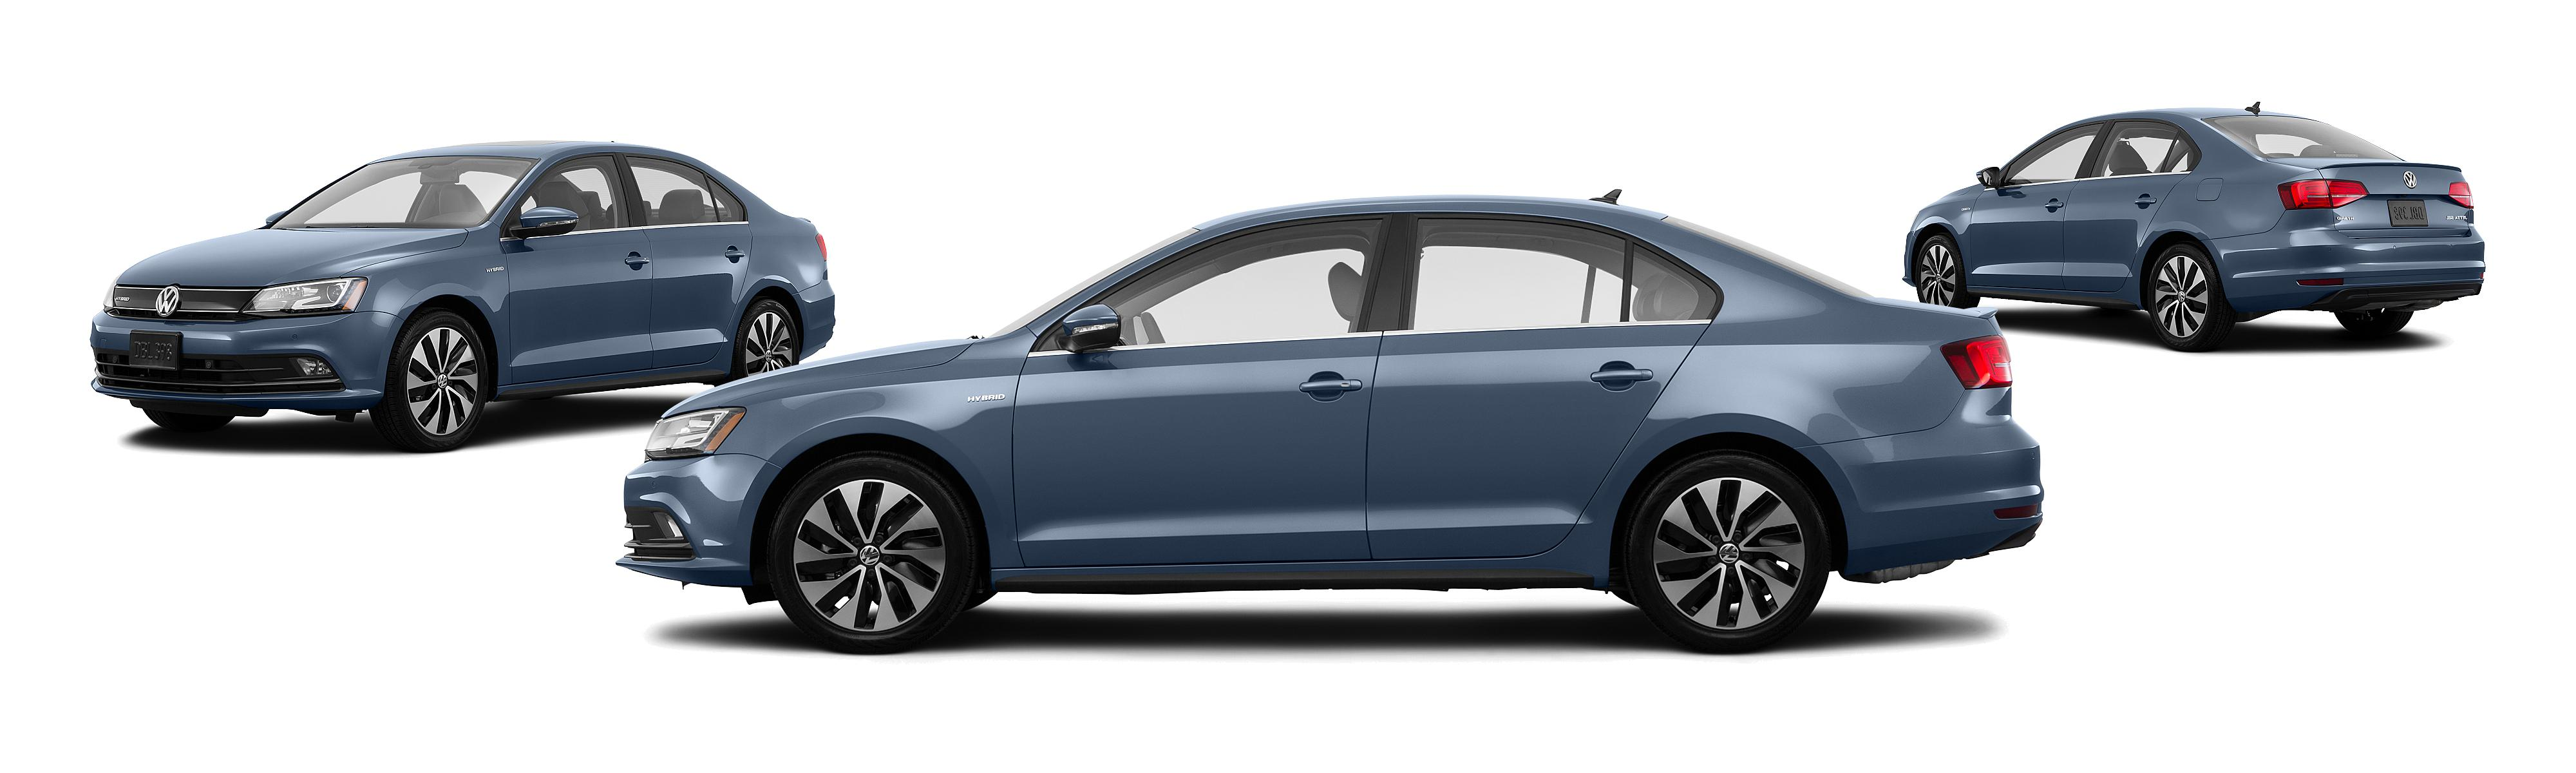 2016-volkswagen-jetta-hybrid-sel-premium-4dr-sedan-platinum-gray-metallic-composite-large Interesting Info About 2016 Vw Gli